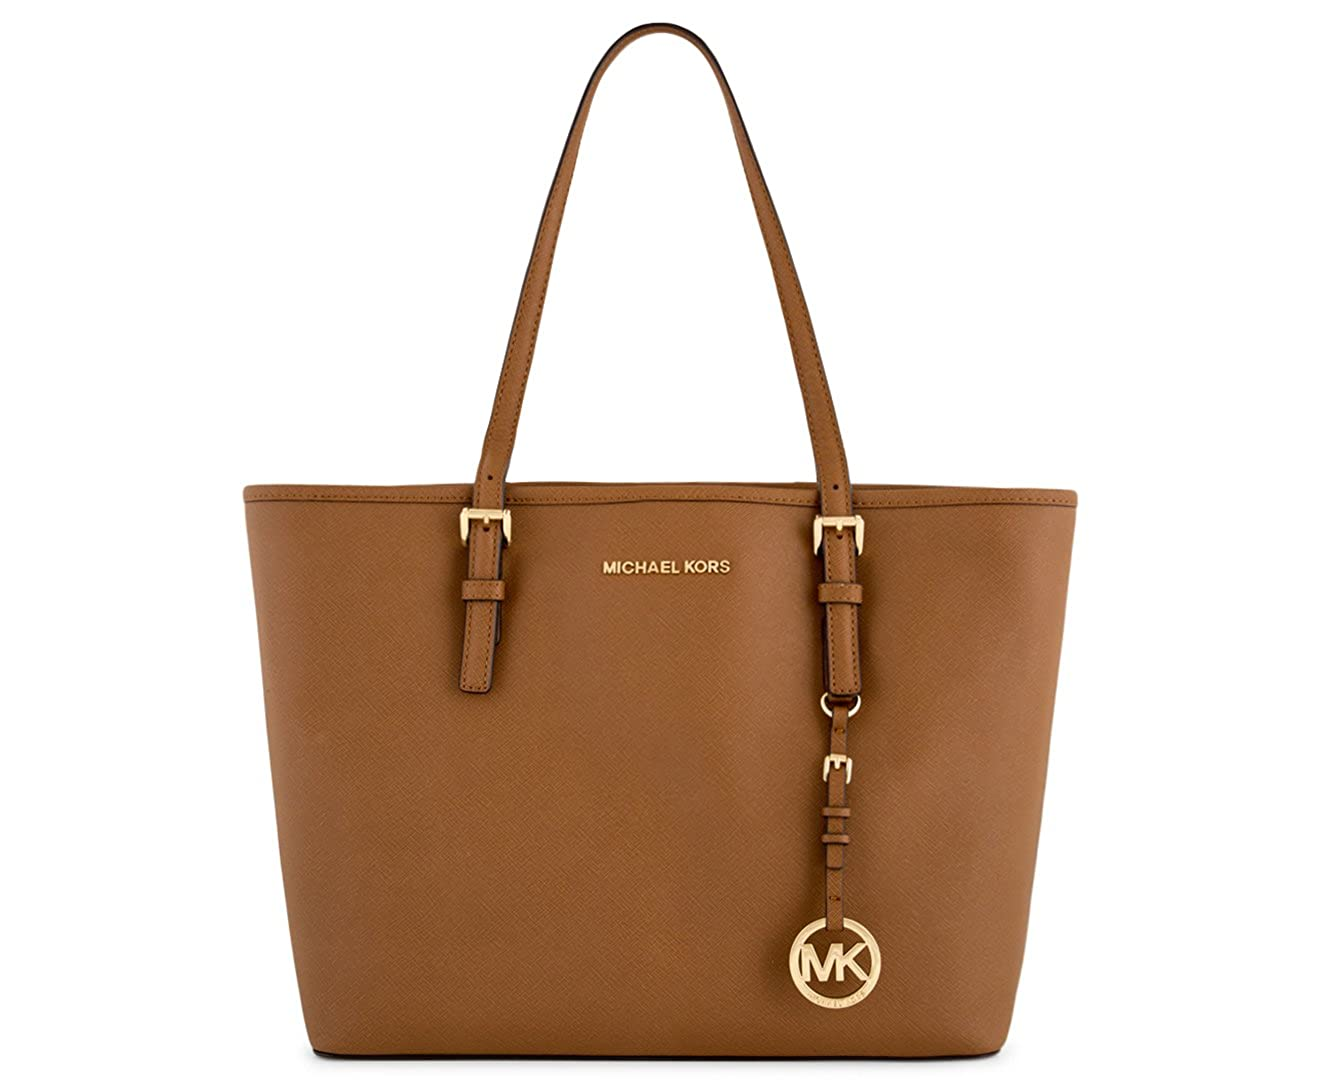 7234f3e3d861 MICHAEL Michael Kors Jet Set Travel Medium Carryall Tote Saffiano Leather -  Luggage